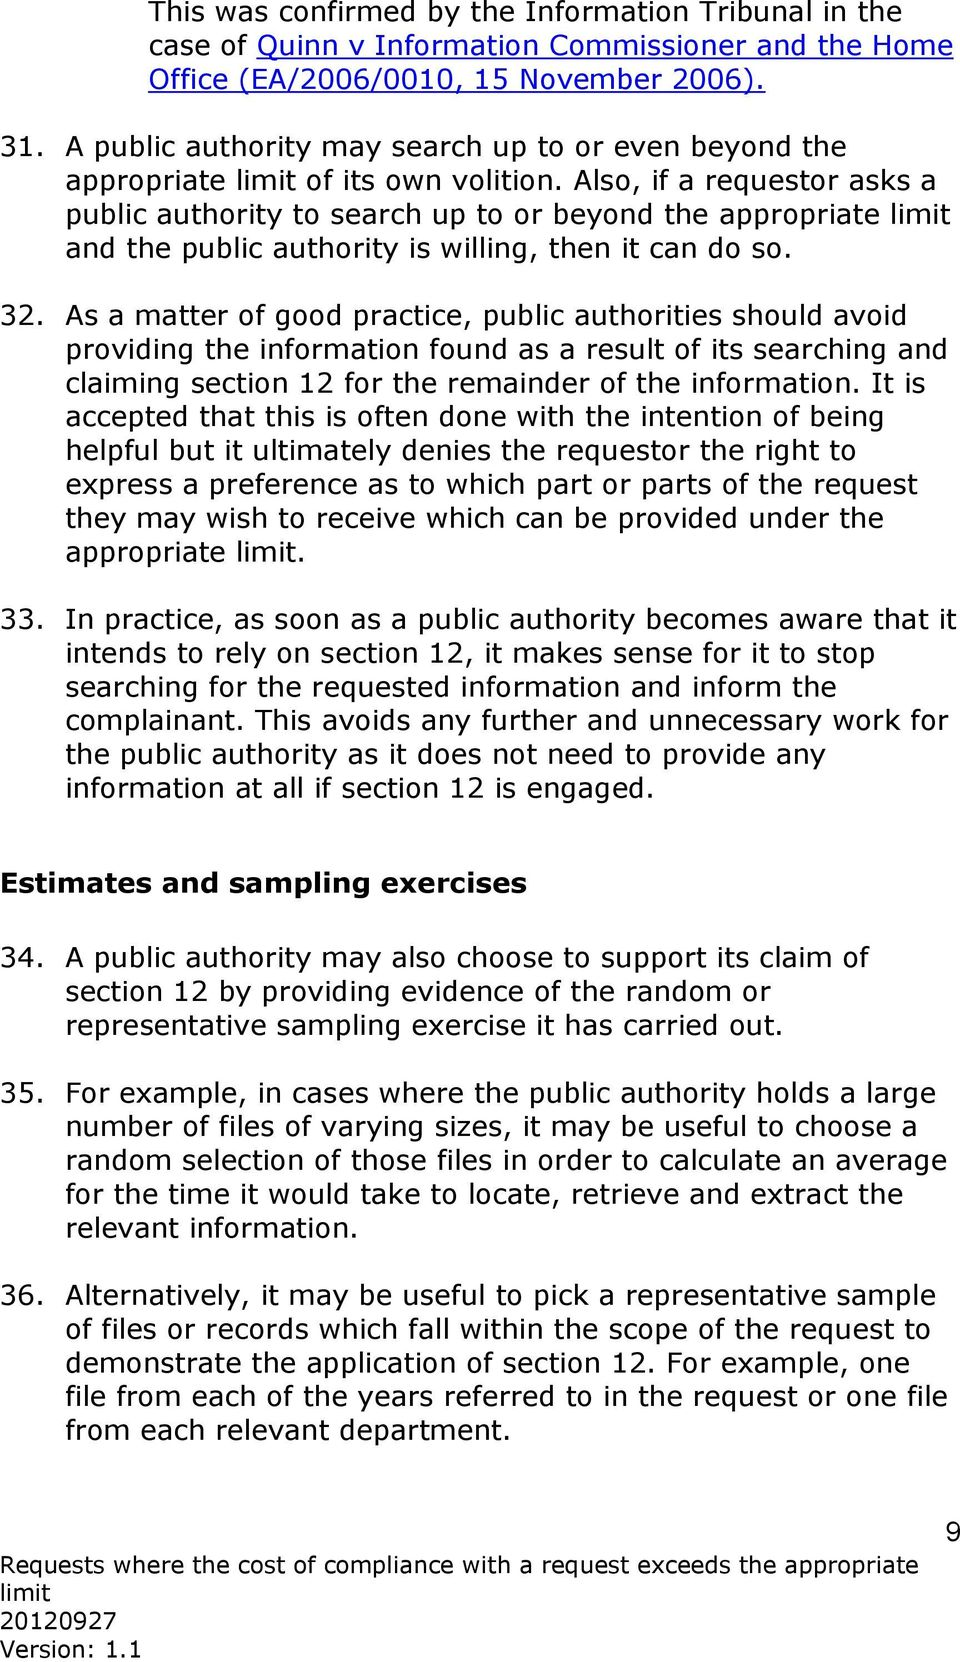 Also, if a requestor asks a public authority to search up to or beyond the appropriate and the public authority is willing, then it can do so. 32.